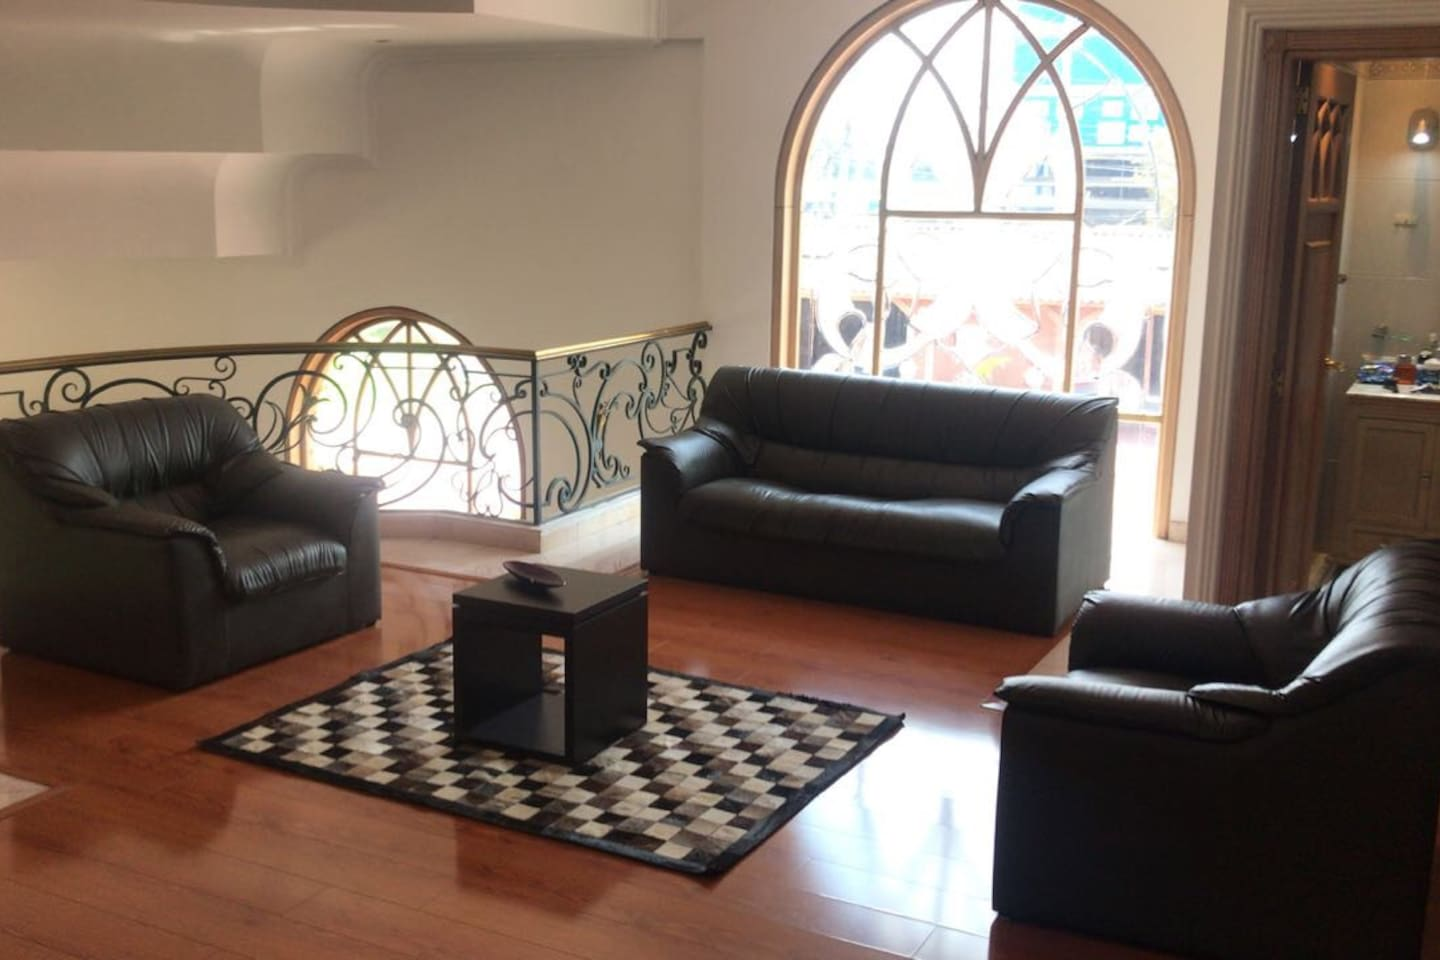 Muebles Luxury Guaymaral - Luxurious House In The Outskirts Of Bogota Cottages For Rent In [mjhdah]https://a0.muscache.com/im/pictures/b337b202-8245-4f8b-9e54-b50575656f51.jpg?aki_policy=xx_large